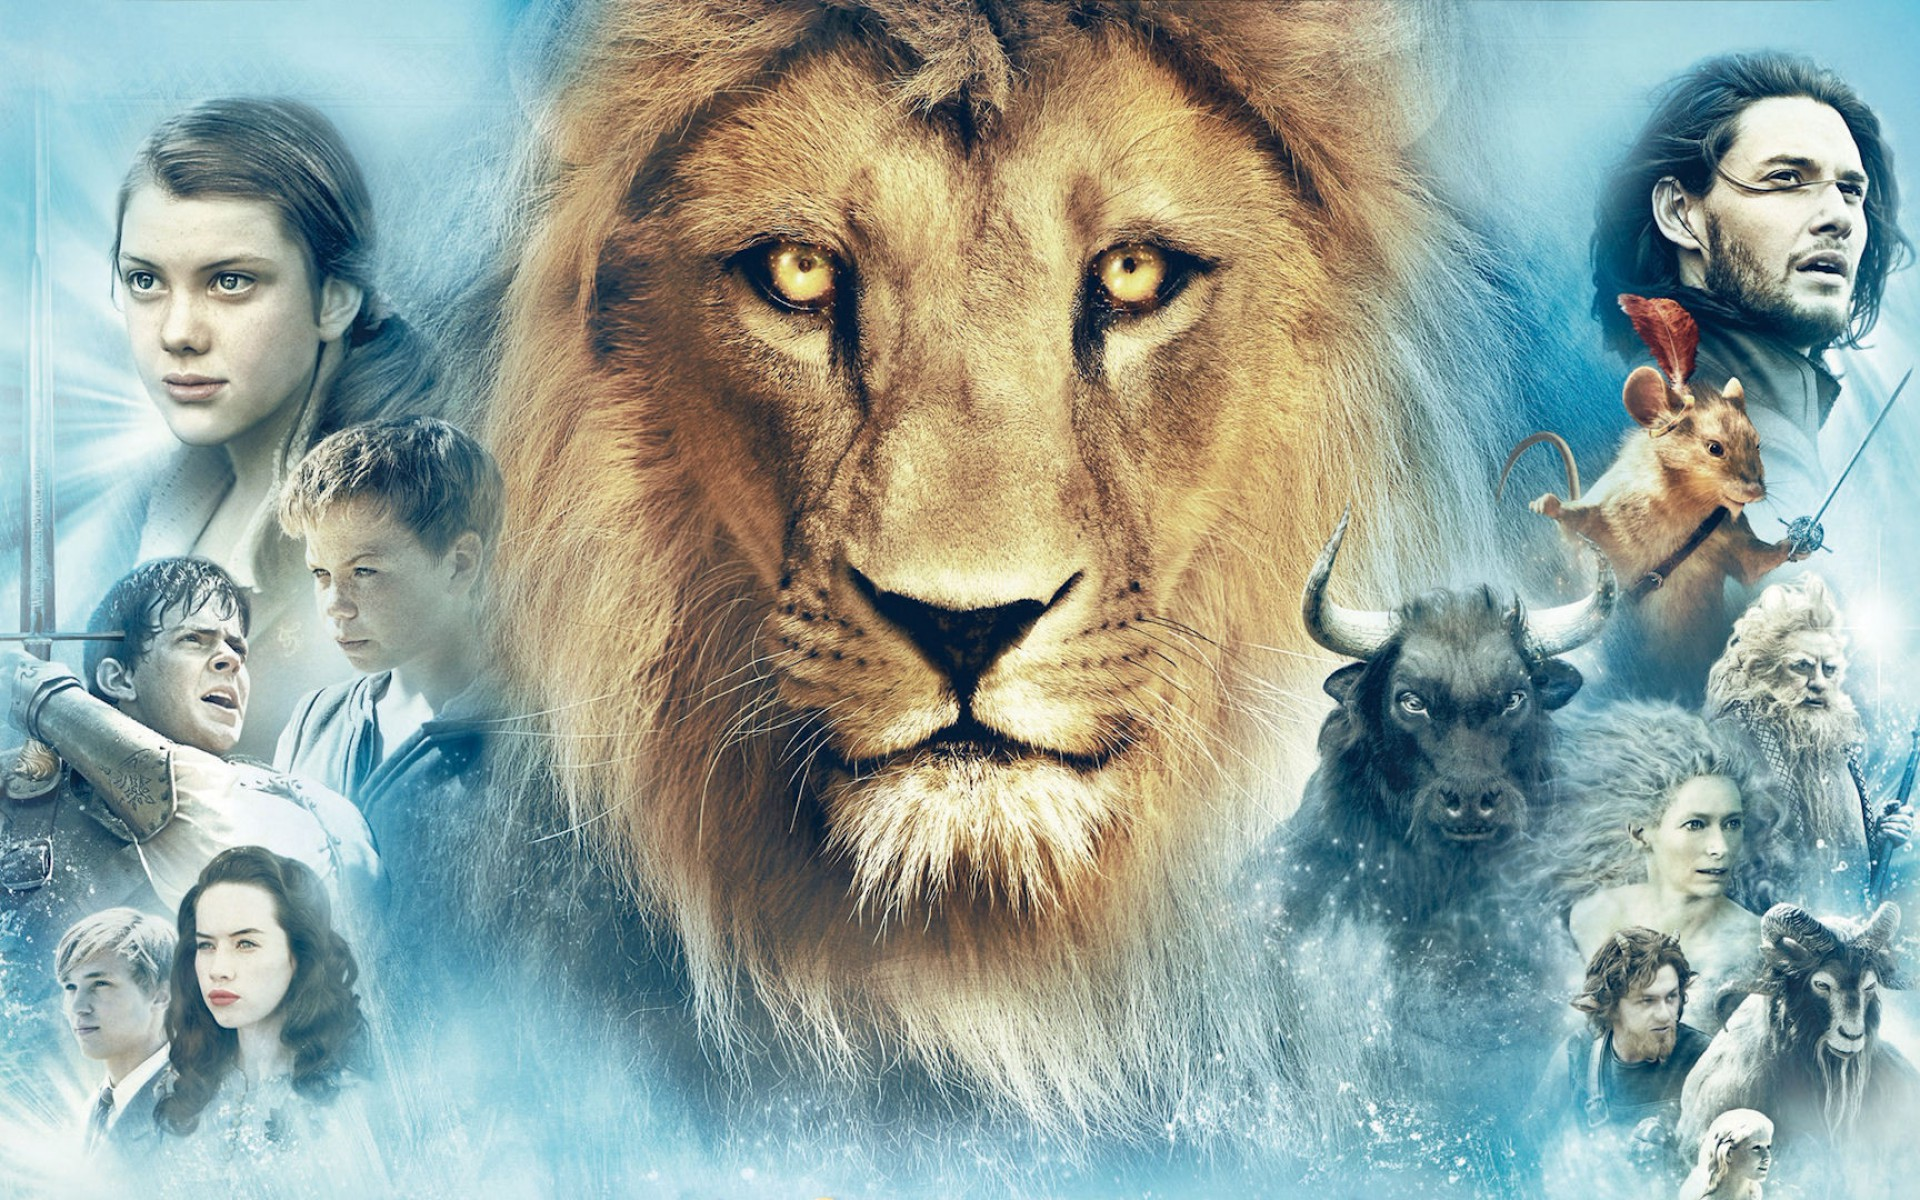 1920x1200 - The Chronicles of Narnia: The Voyage of the Dawn Treader Wallpapers 8